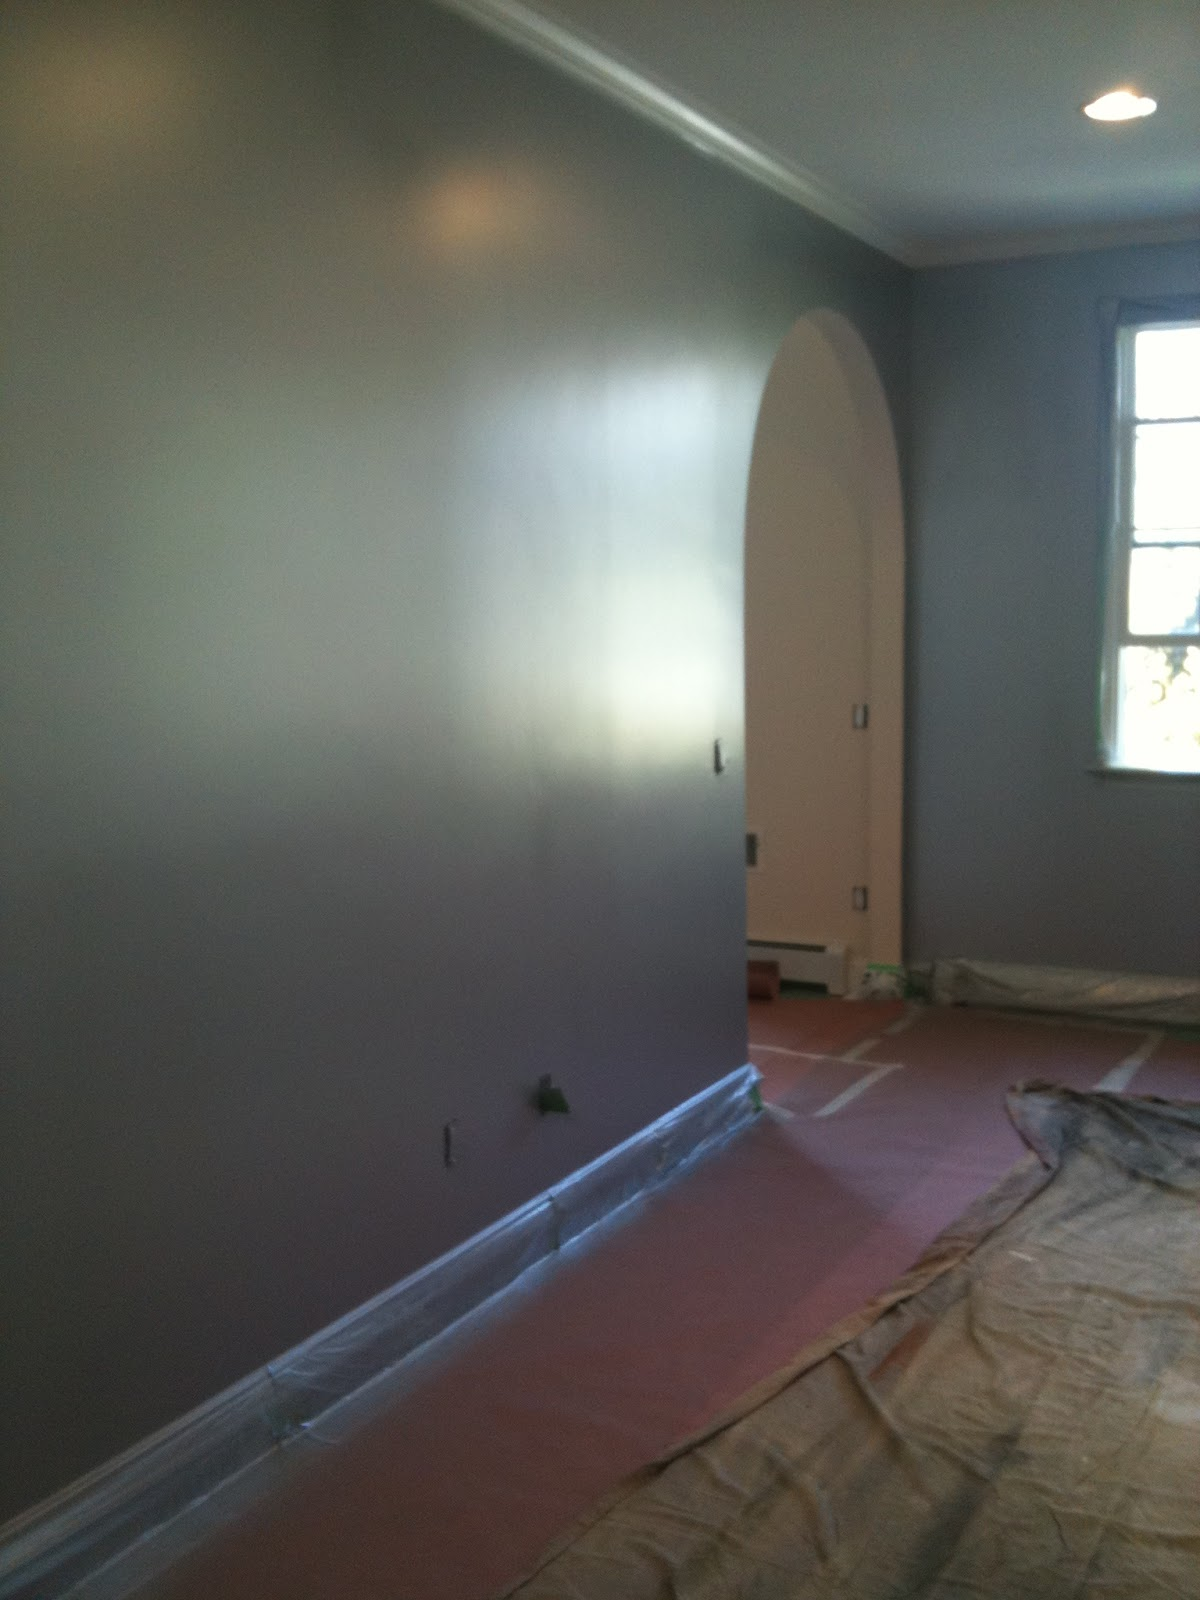 Silver Metallic Wall Paint | www.imgkid.com - The Image ...